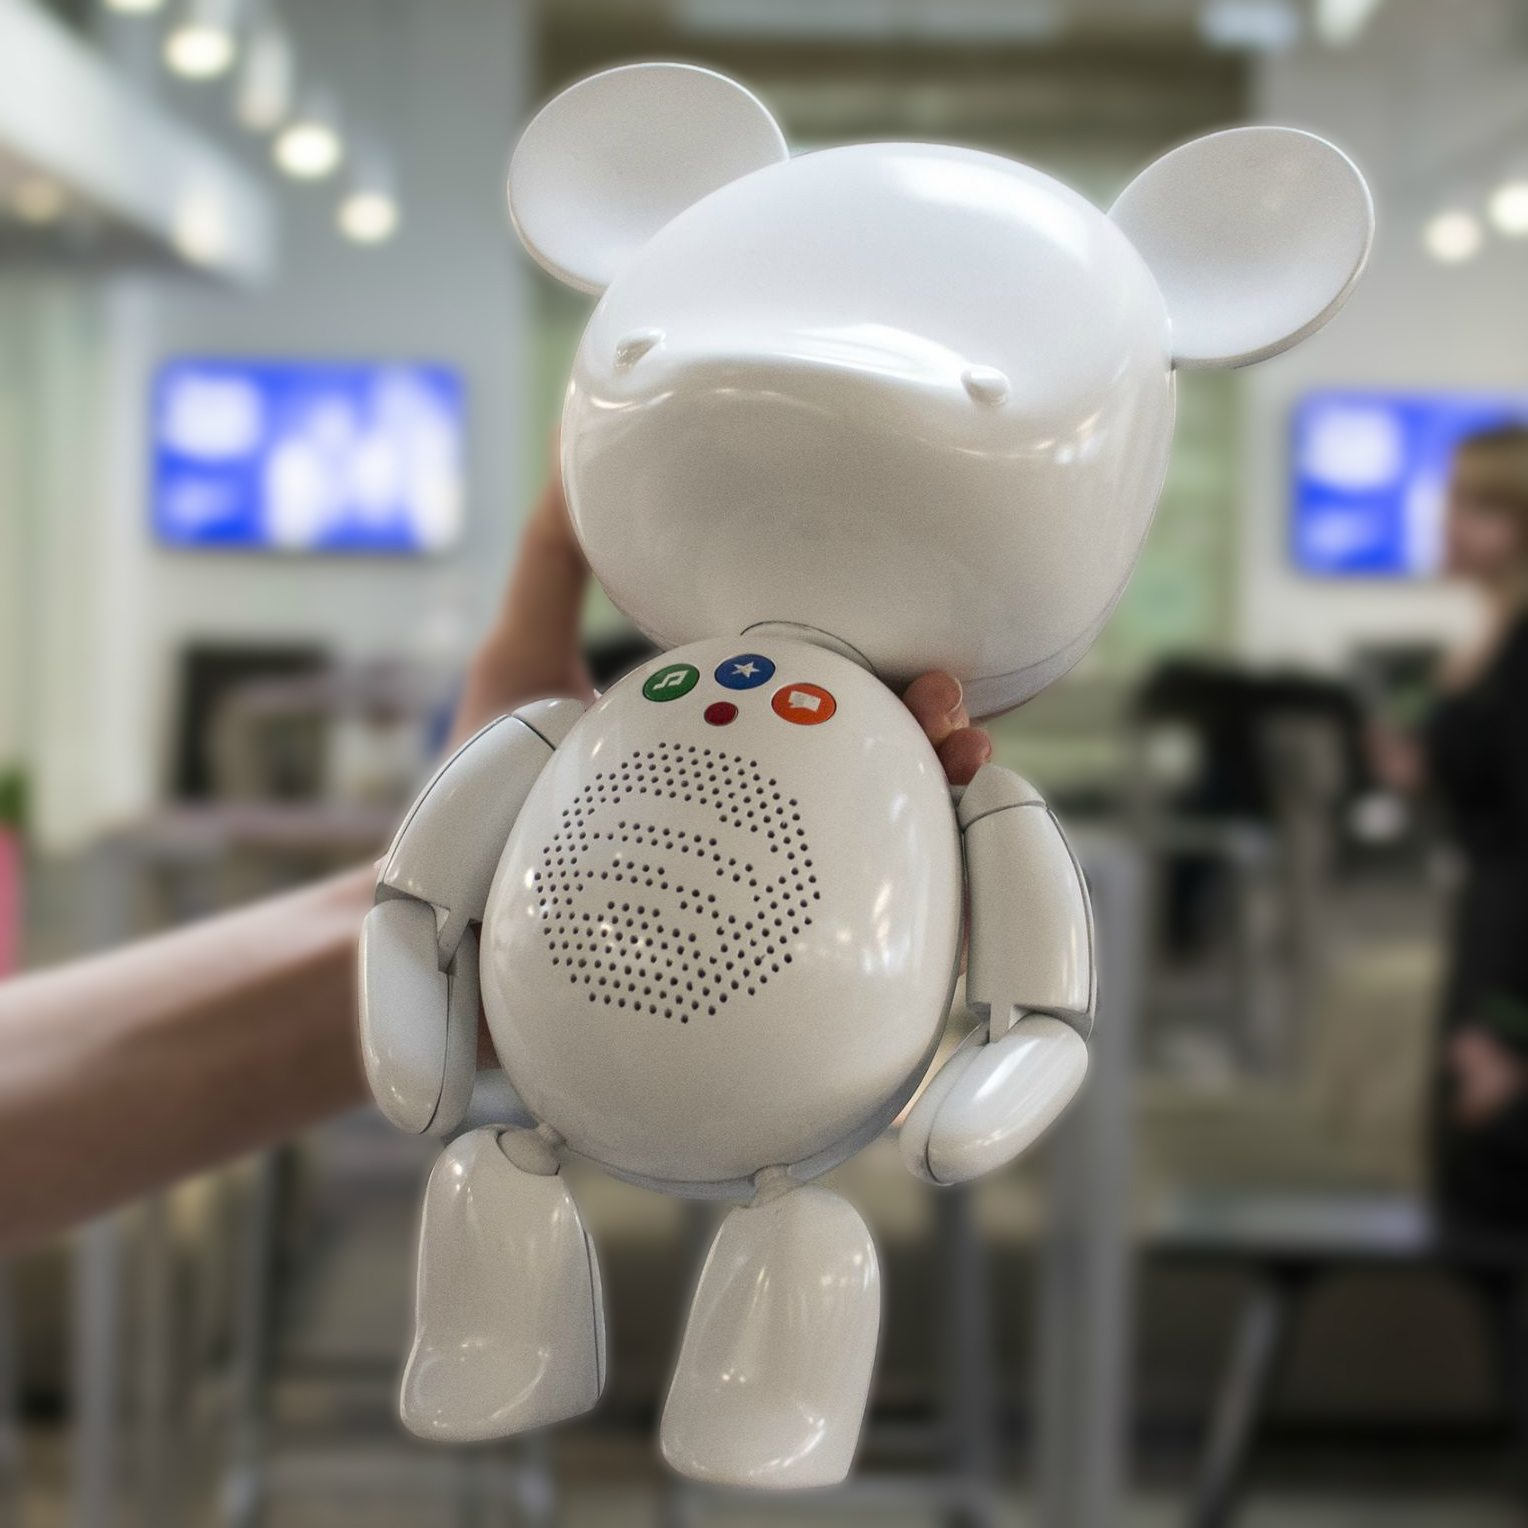 Spotibear The First 3D Printed Hit Toy?